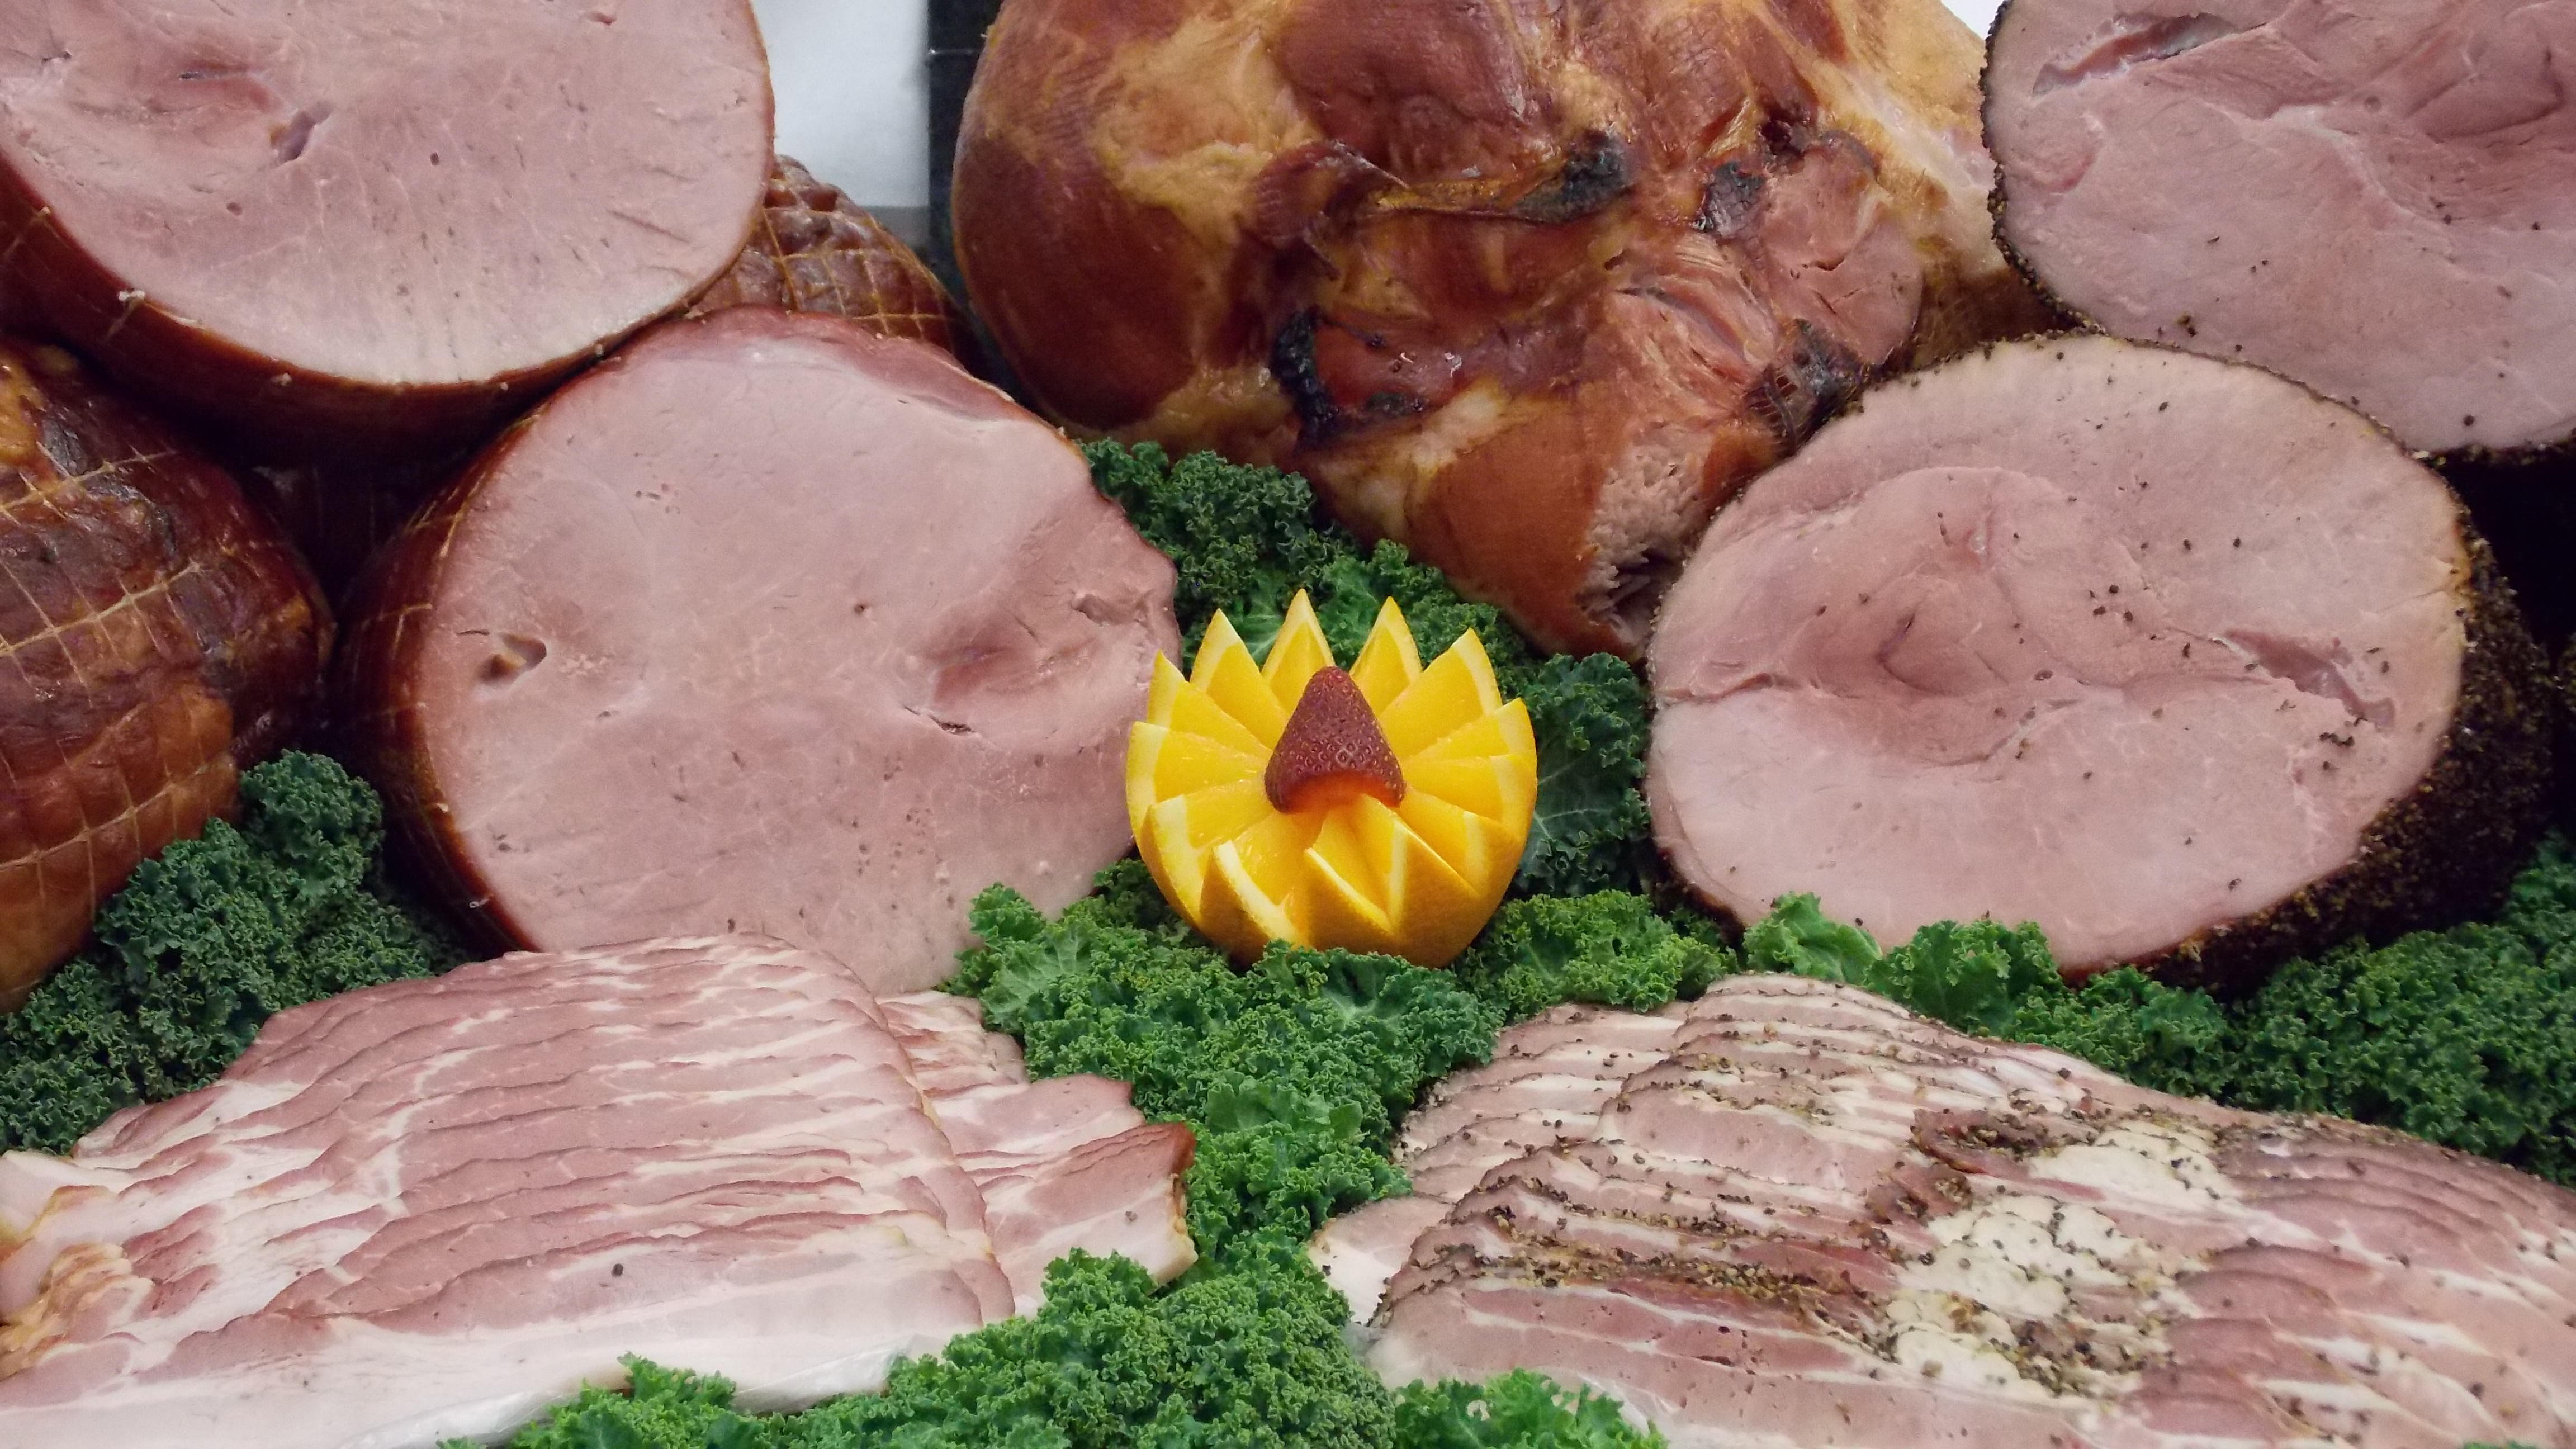 Gartner�s Meats � Smoked Hams and Bacon